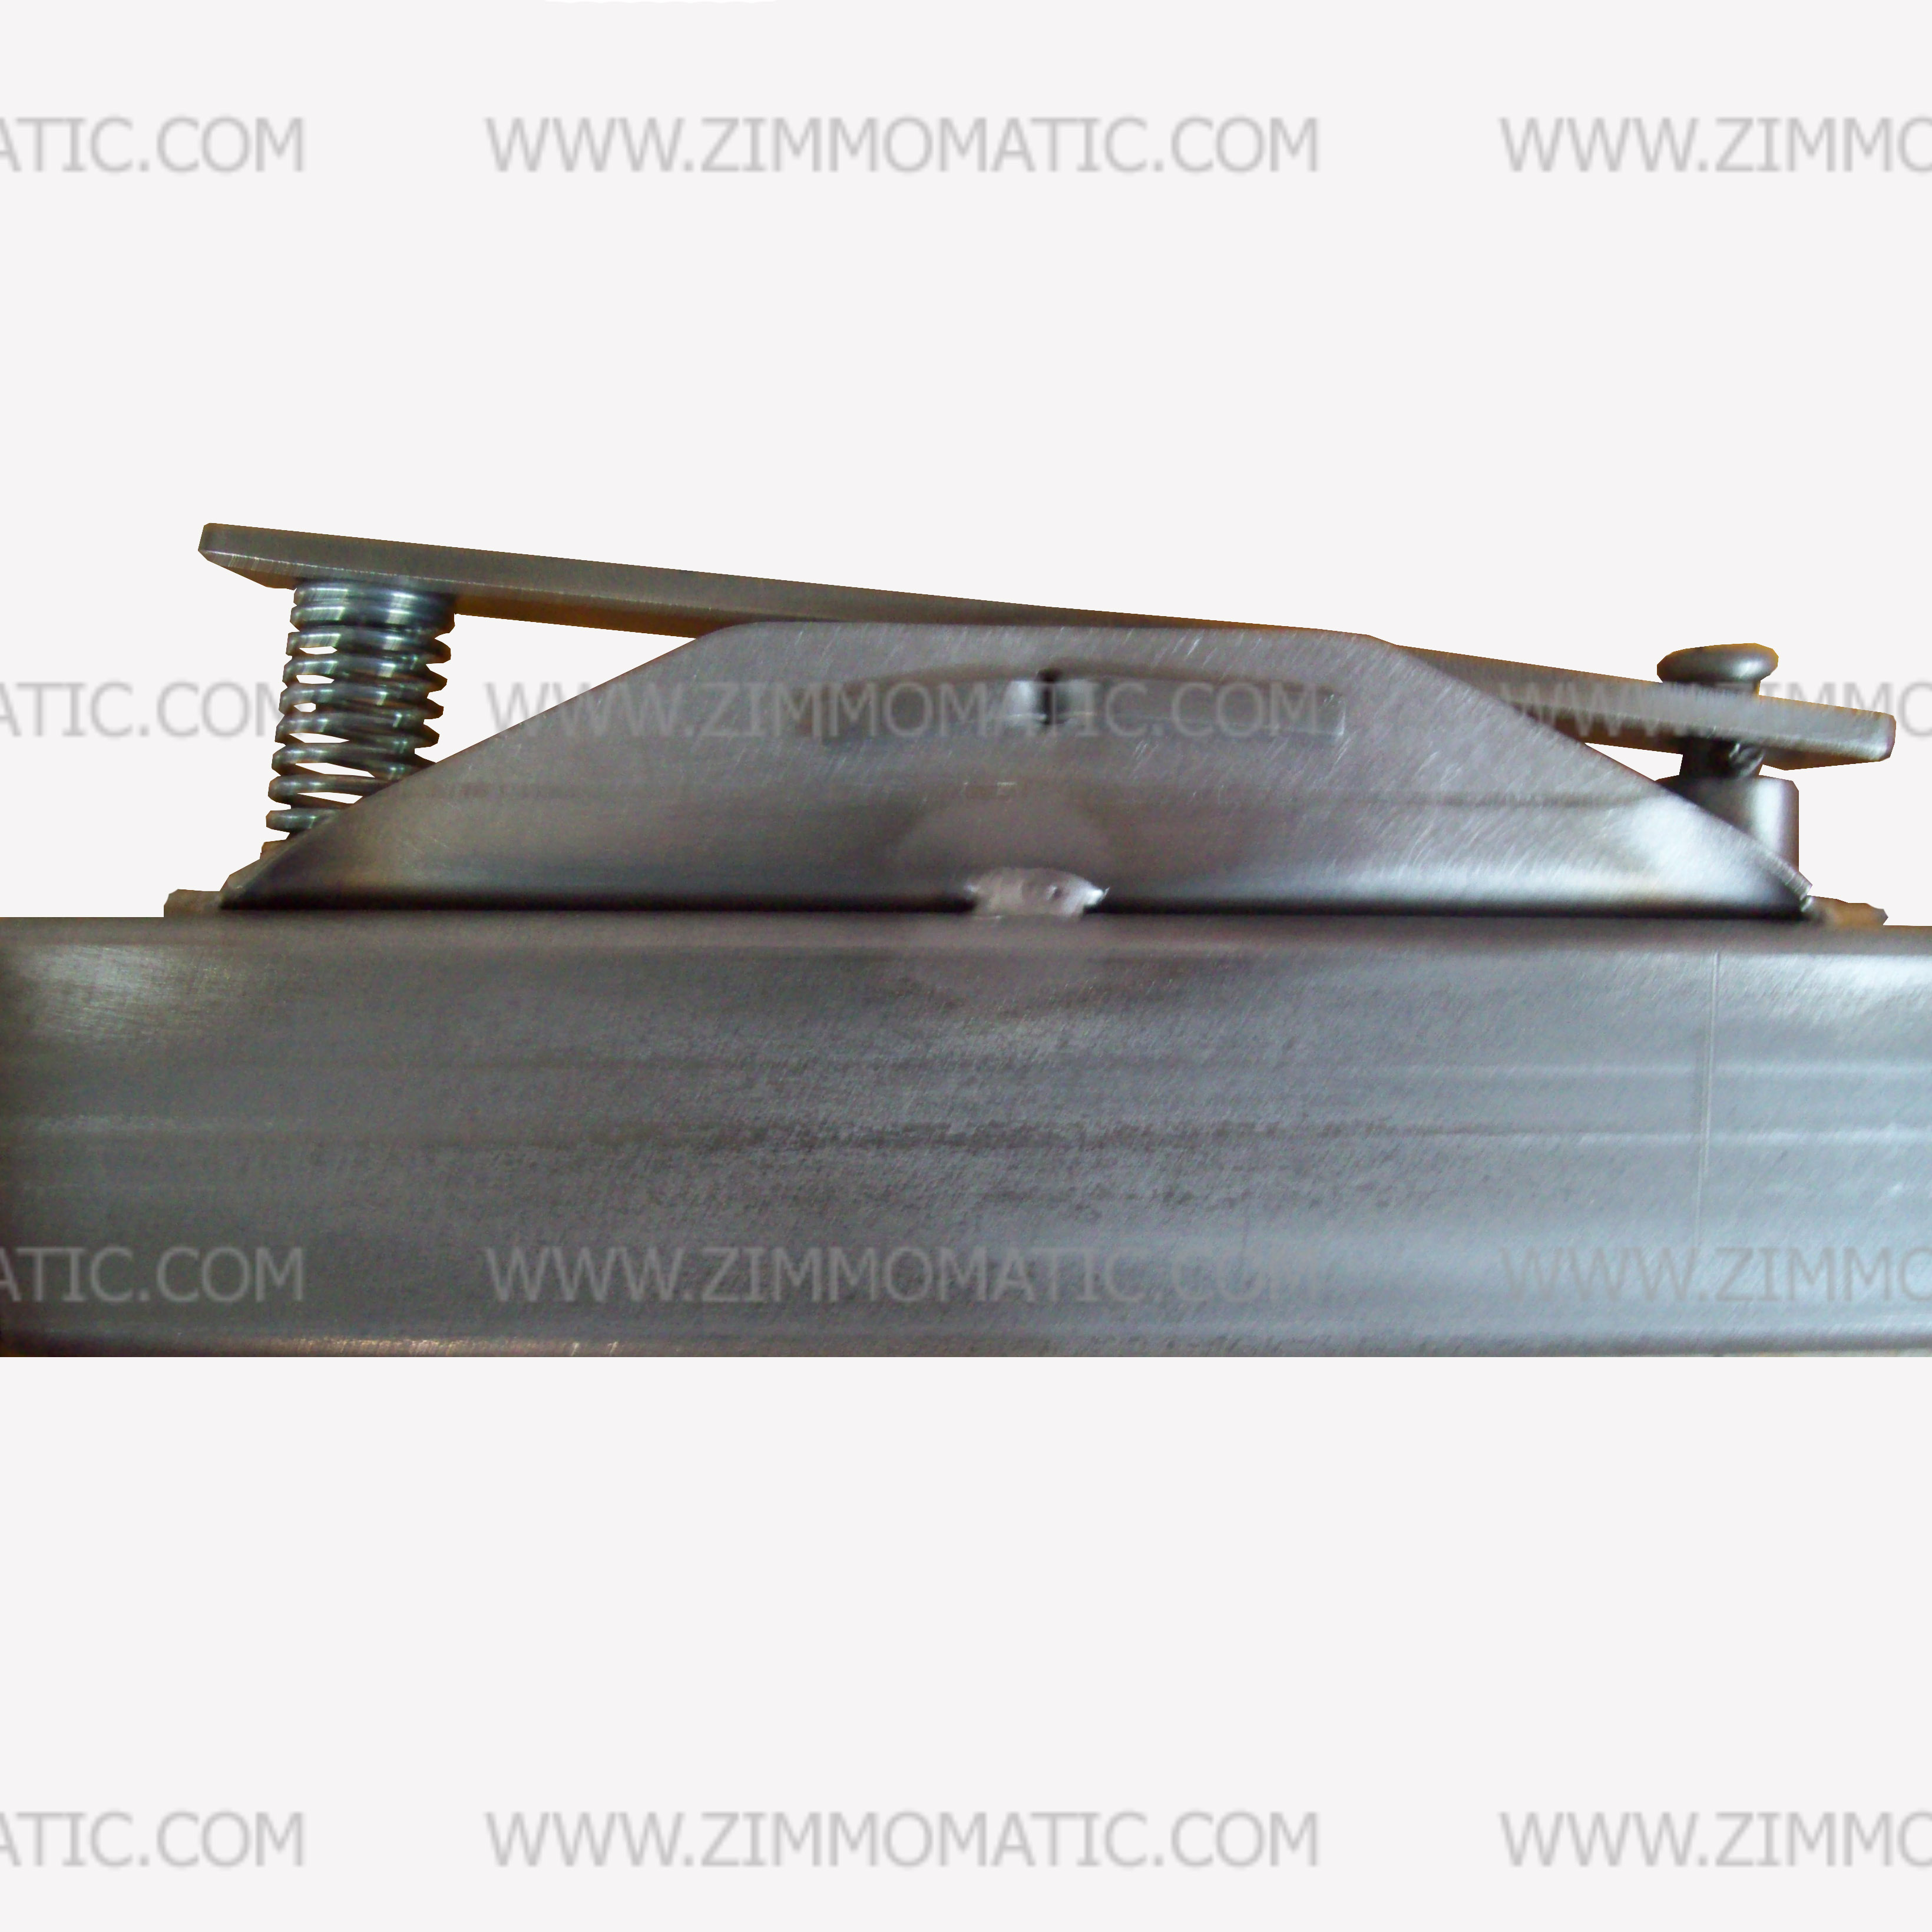 ZOM stainless steel telescoping crank, 84 inch, tarp crank for trailers